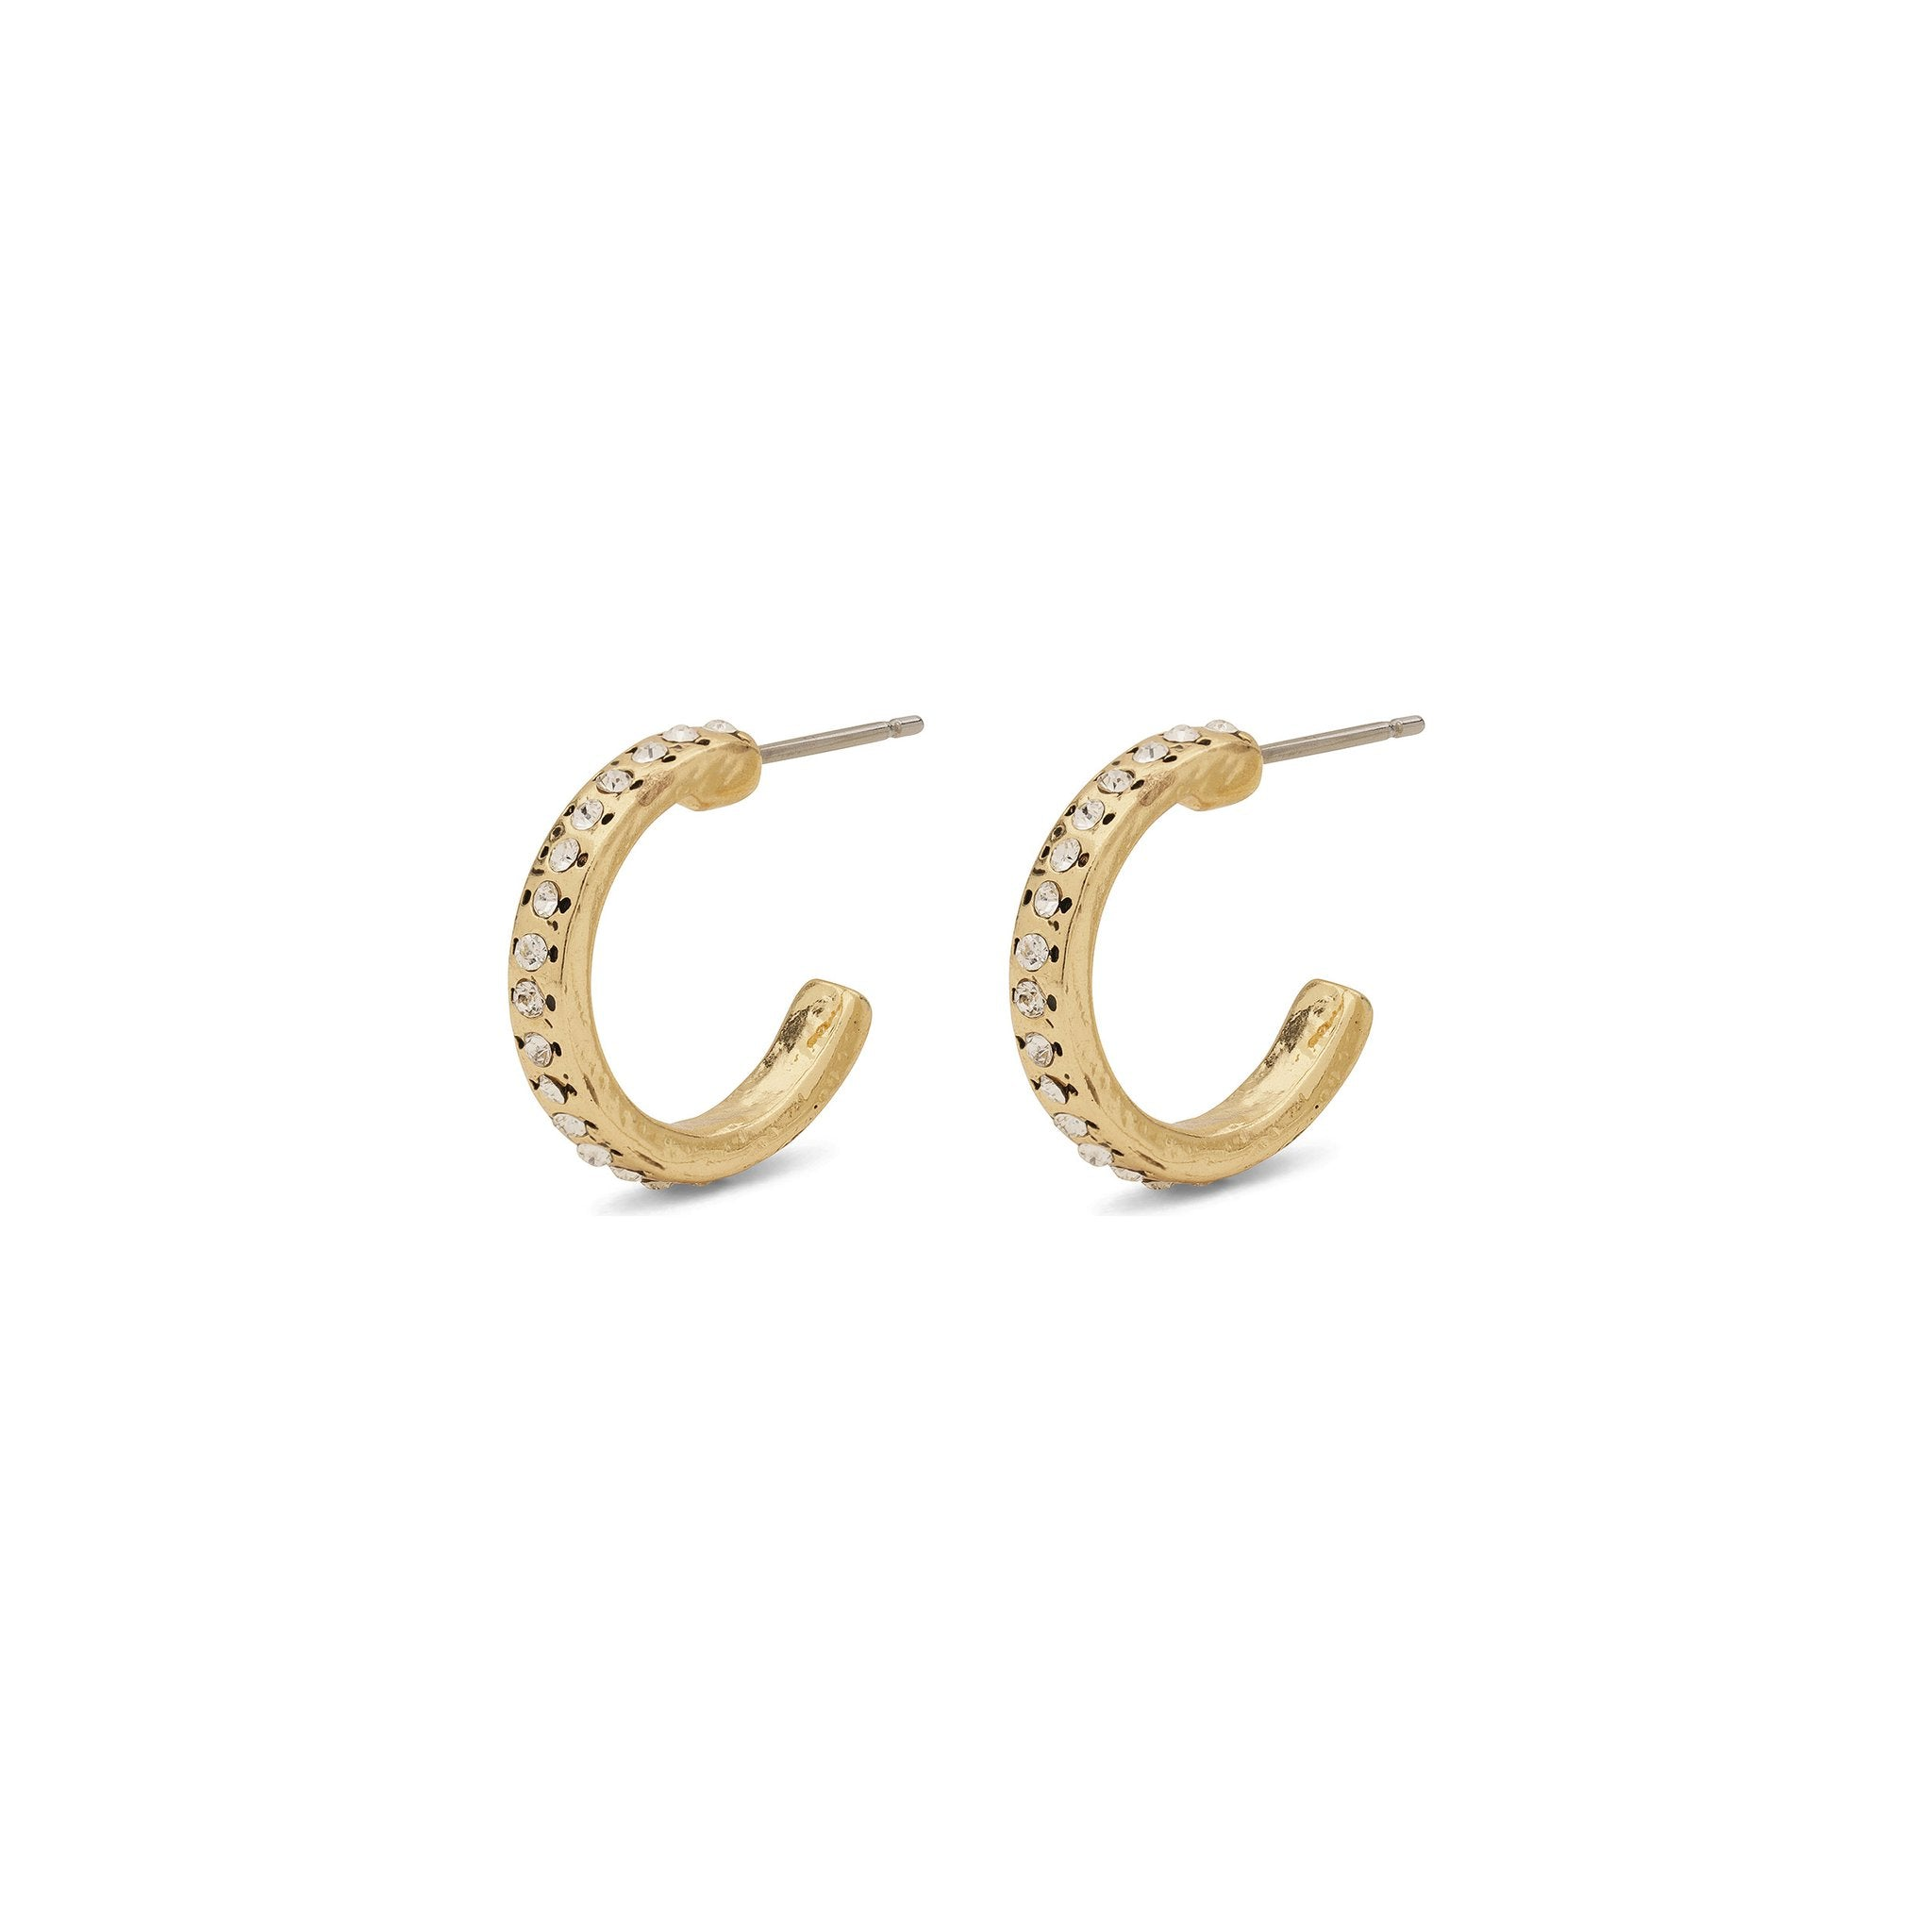 Earrings Arden Pi Gold Plated by Pilgrim - Maaike Kleedt Online